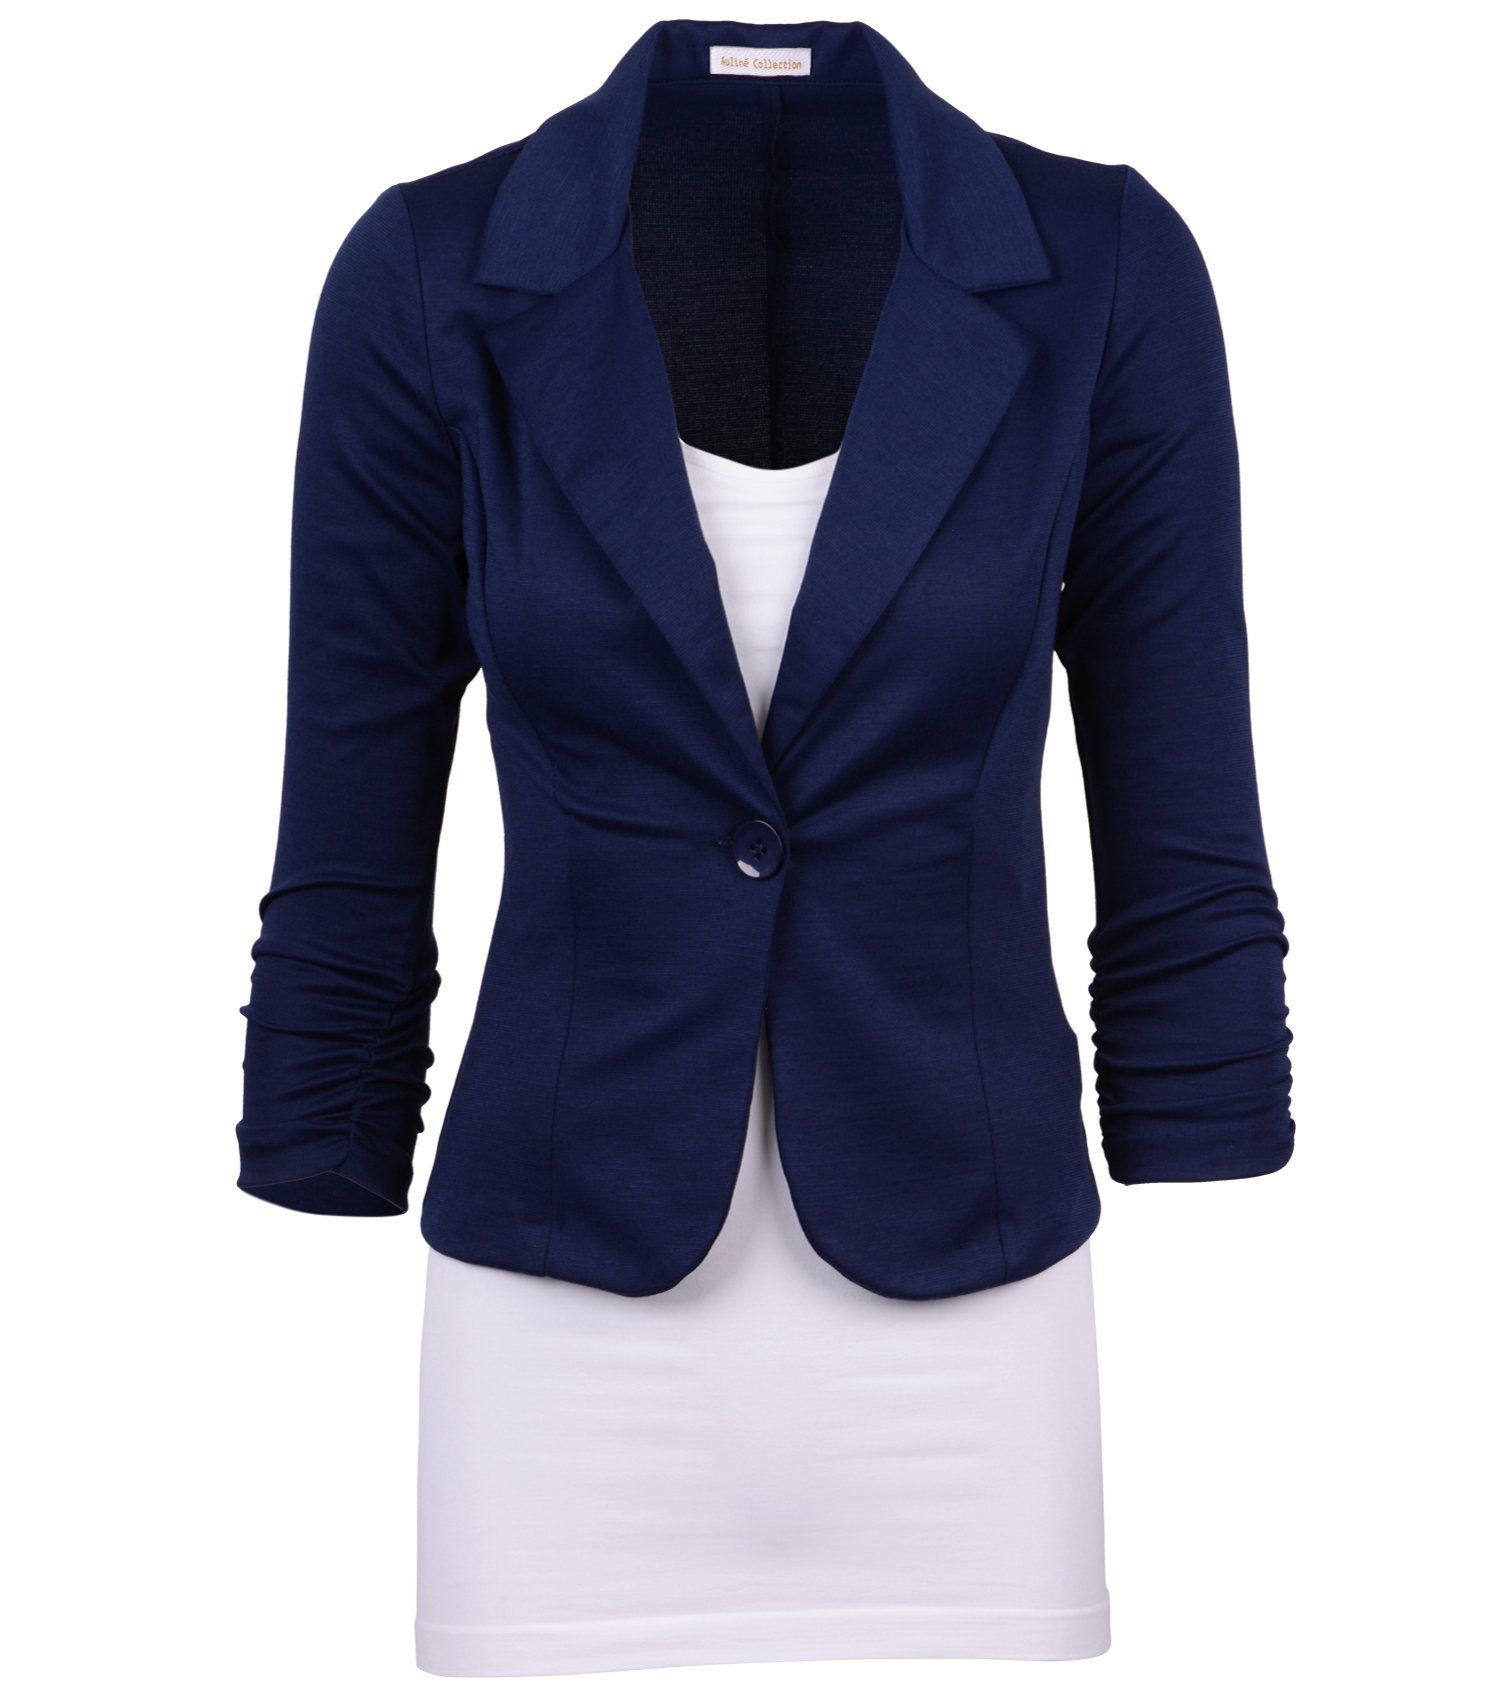 Auliné Collection Women's Casual Work Solid Color Knit Blazer Navy Blue 2X